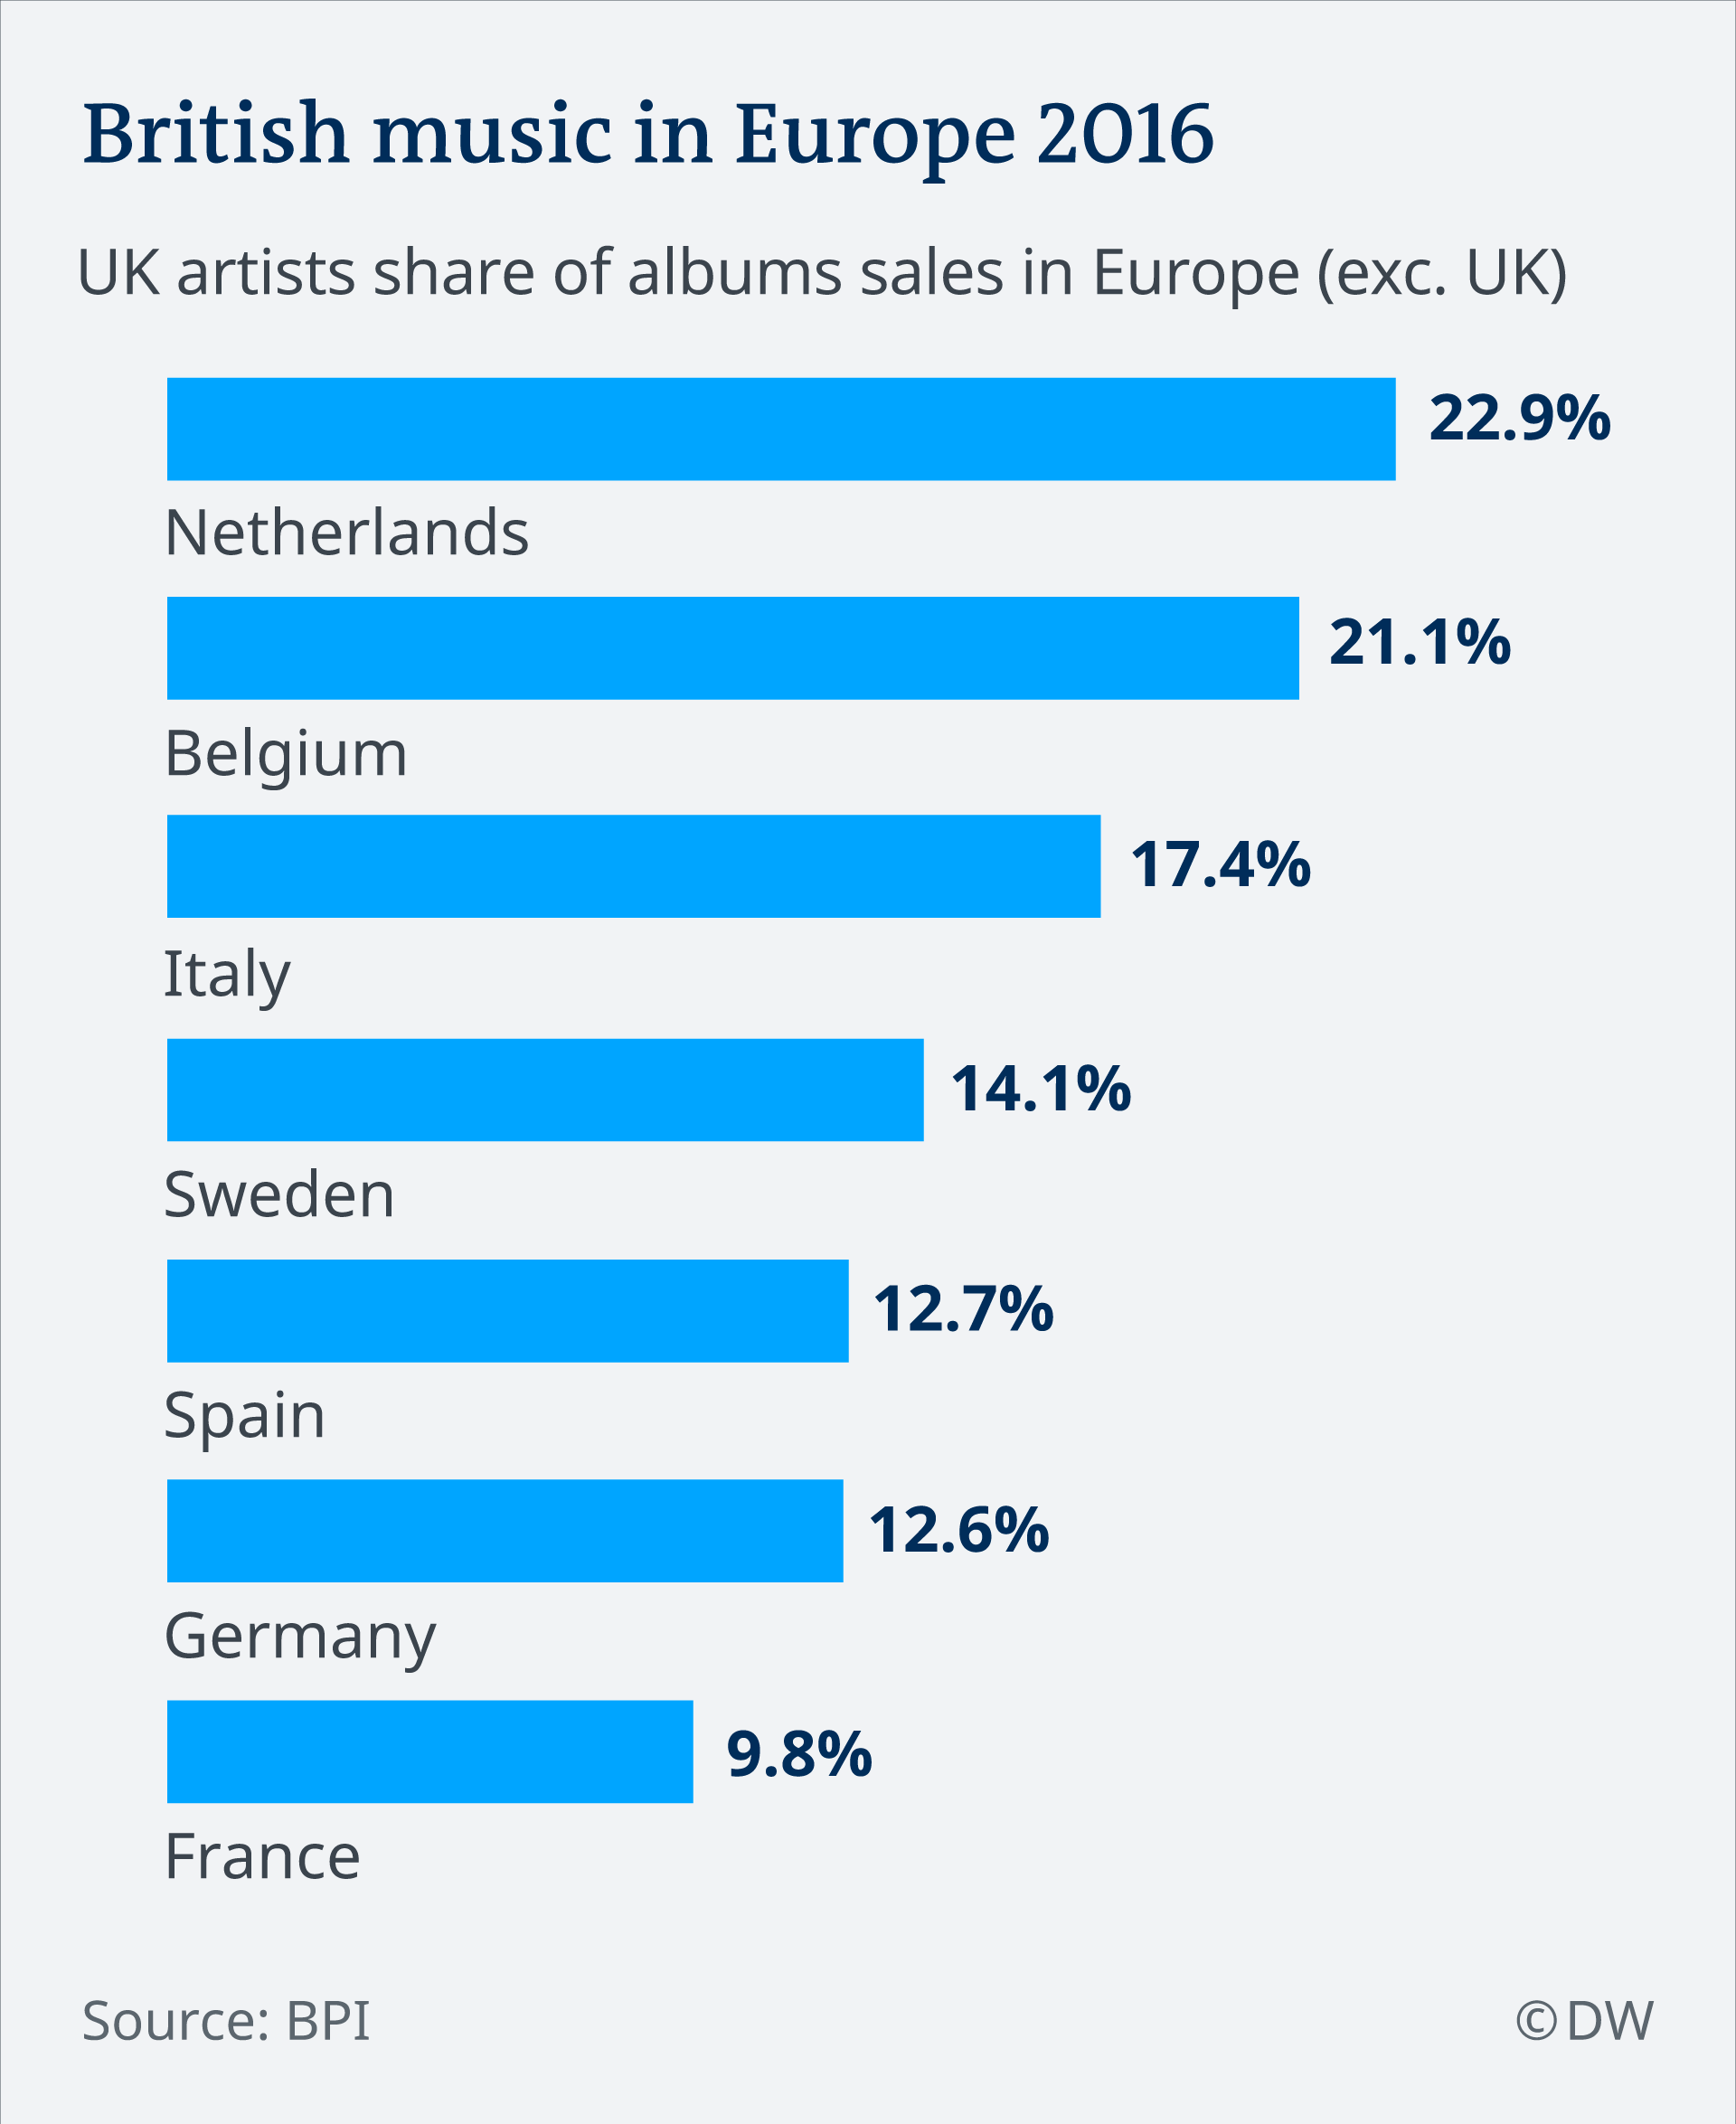 Bar chart showing UK artists' share of album sales in Europe